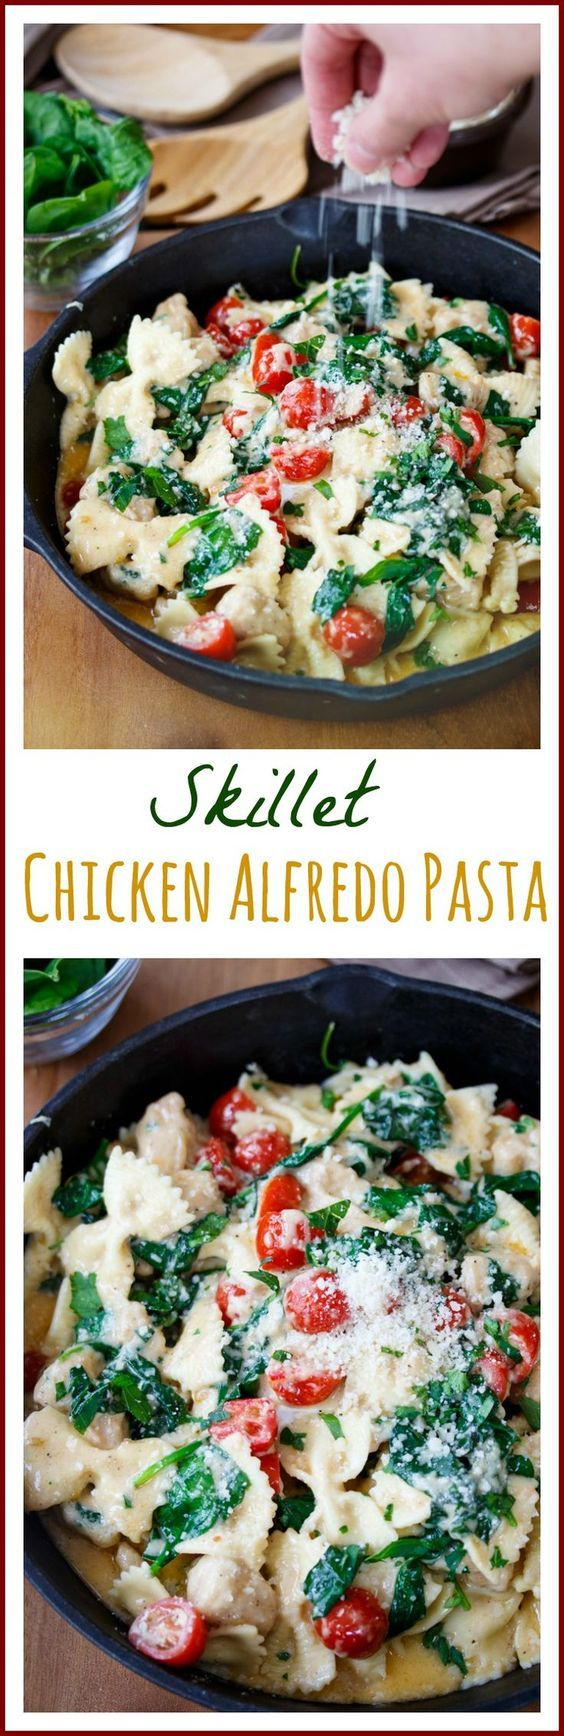 Skillet Chicken Alfredo Pasta: Bow tie pasta tossed in a rich & creamy alfredo sauce with chicken, spinach, and tomatoes. Ready in 30 minutes!